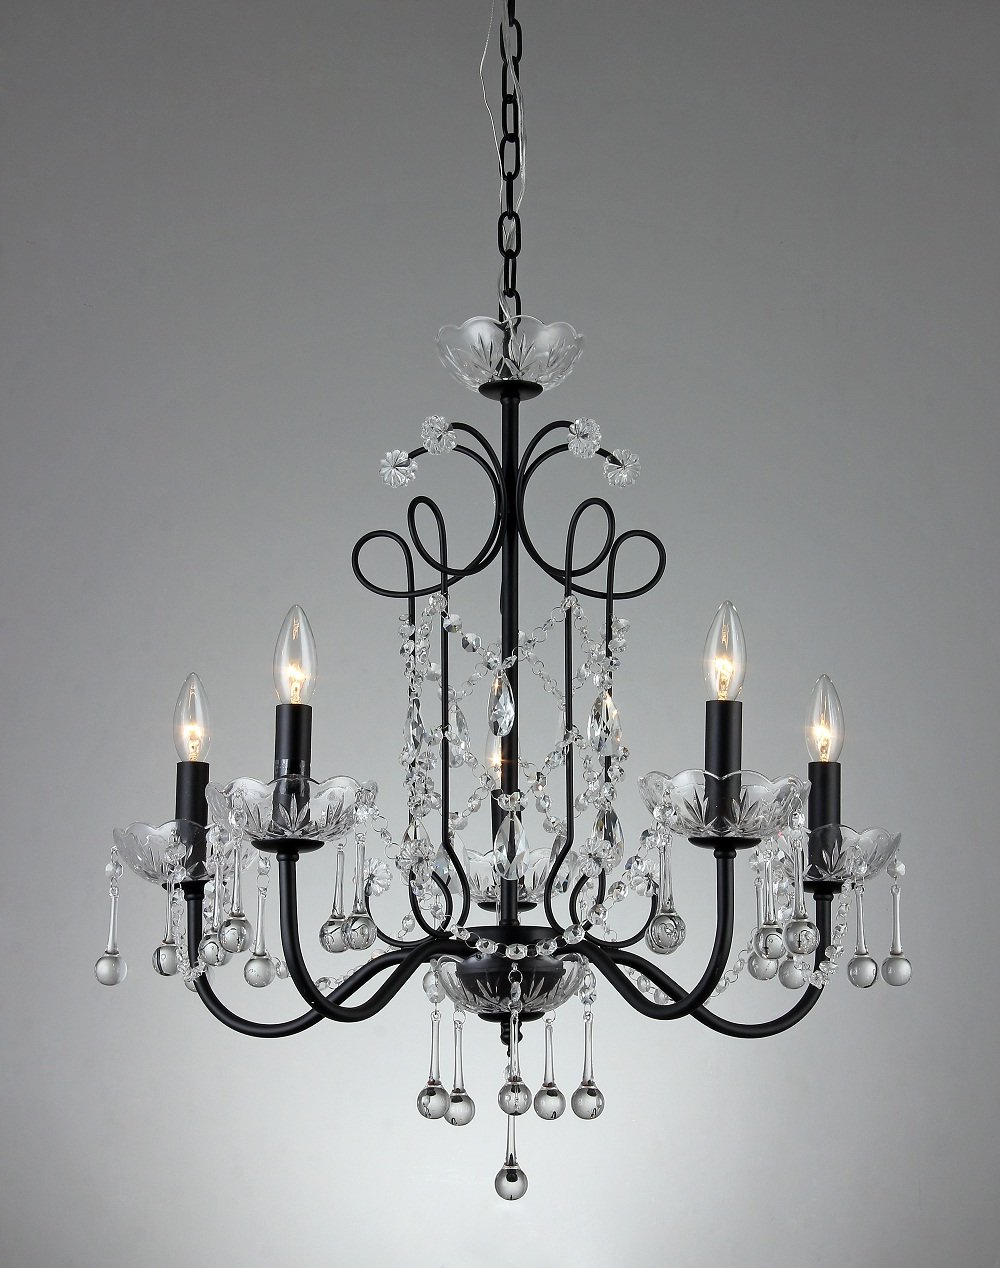 Newest Bunceton 5 Light Candle Style Chandelier Regarding Shaylee 5 Light Candle Style Chandeliers (View 13 of 20)